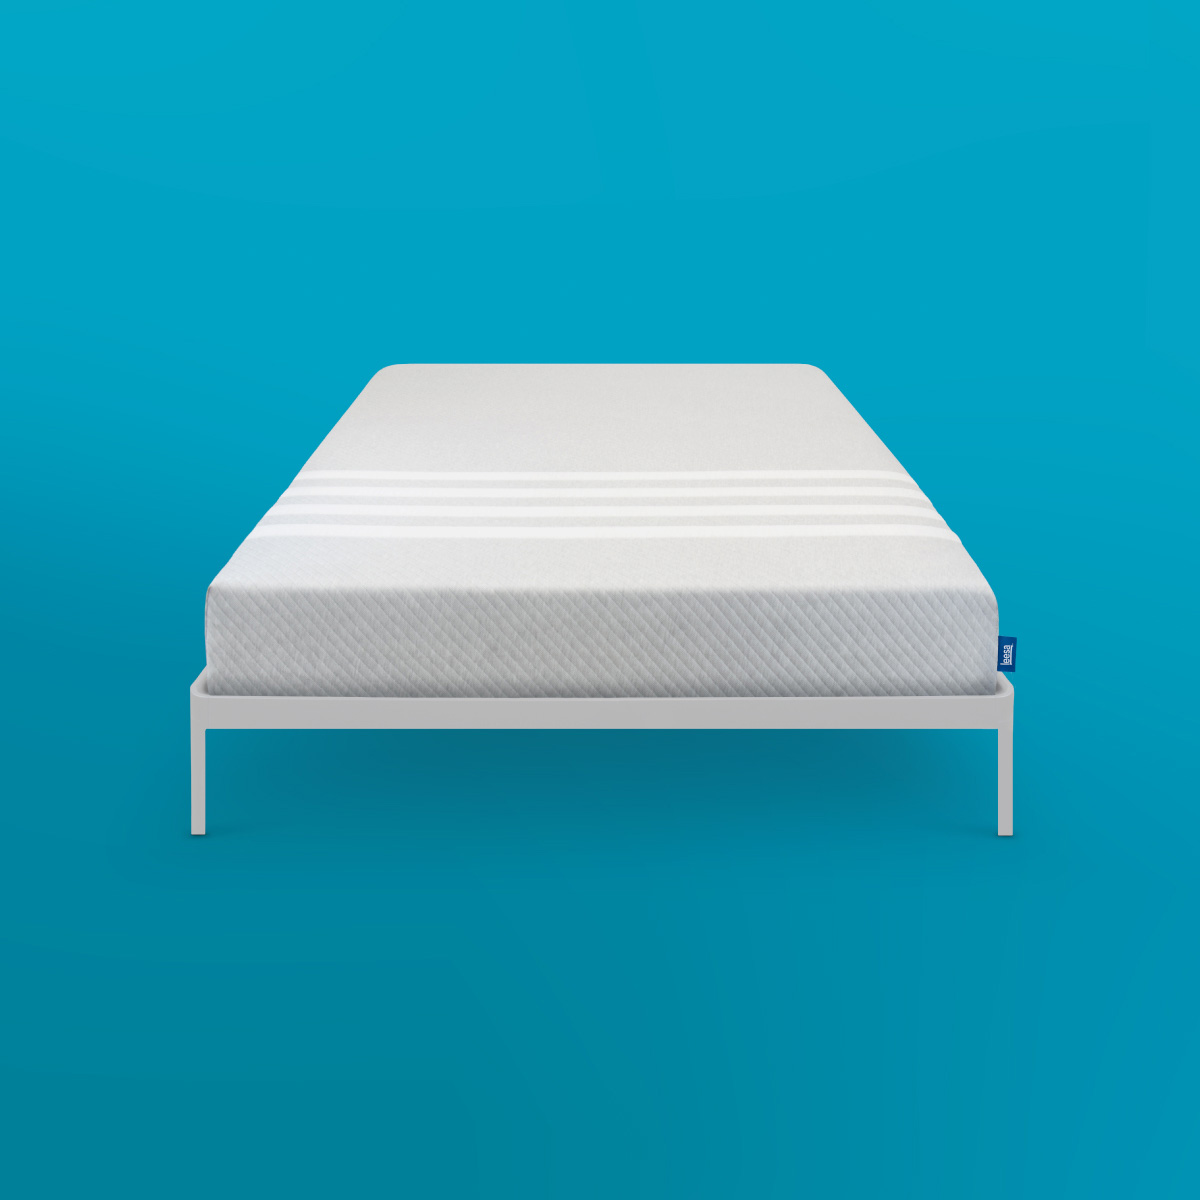 Best Sheets for a Memory Foam Mattress | Leesa